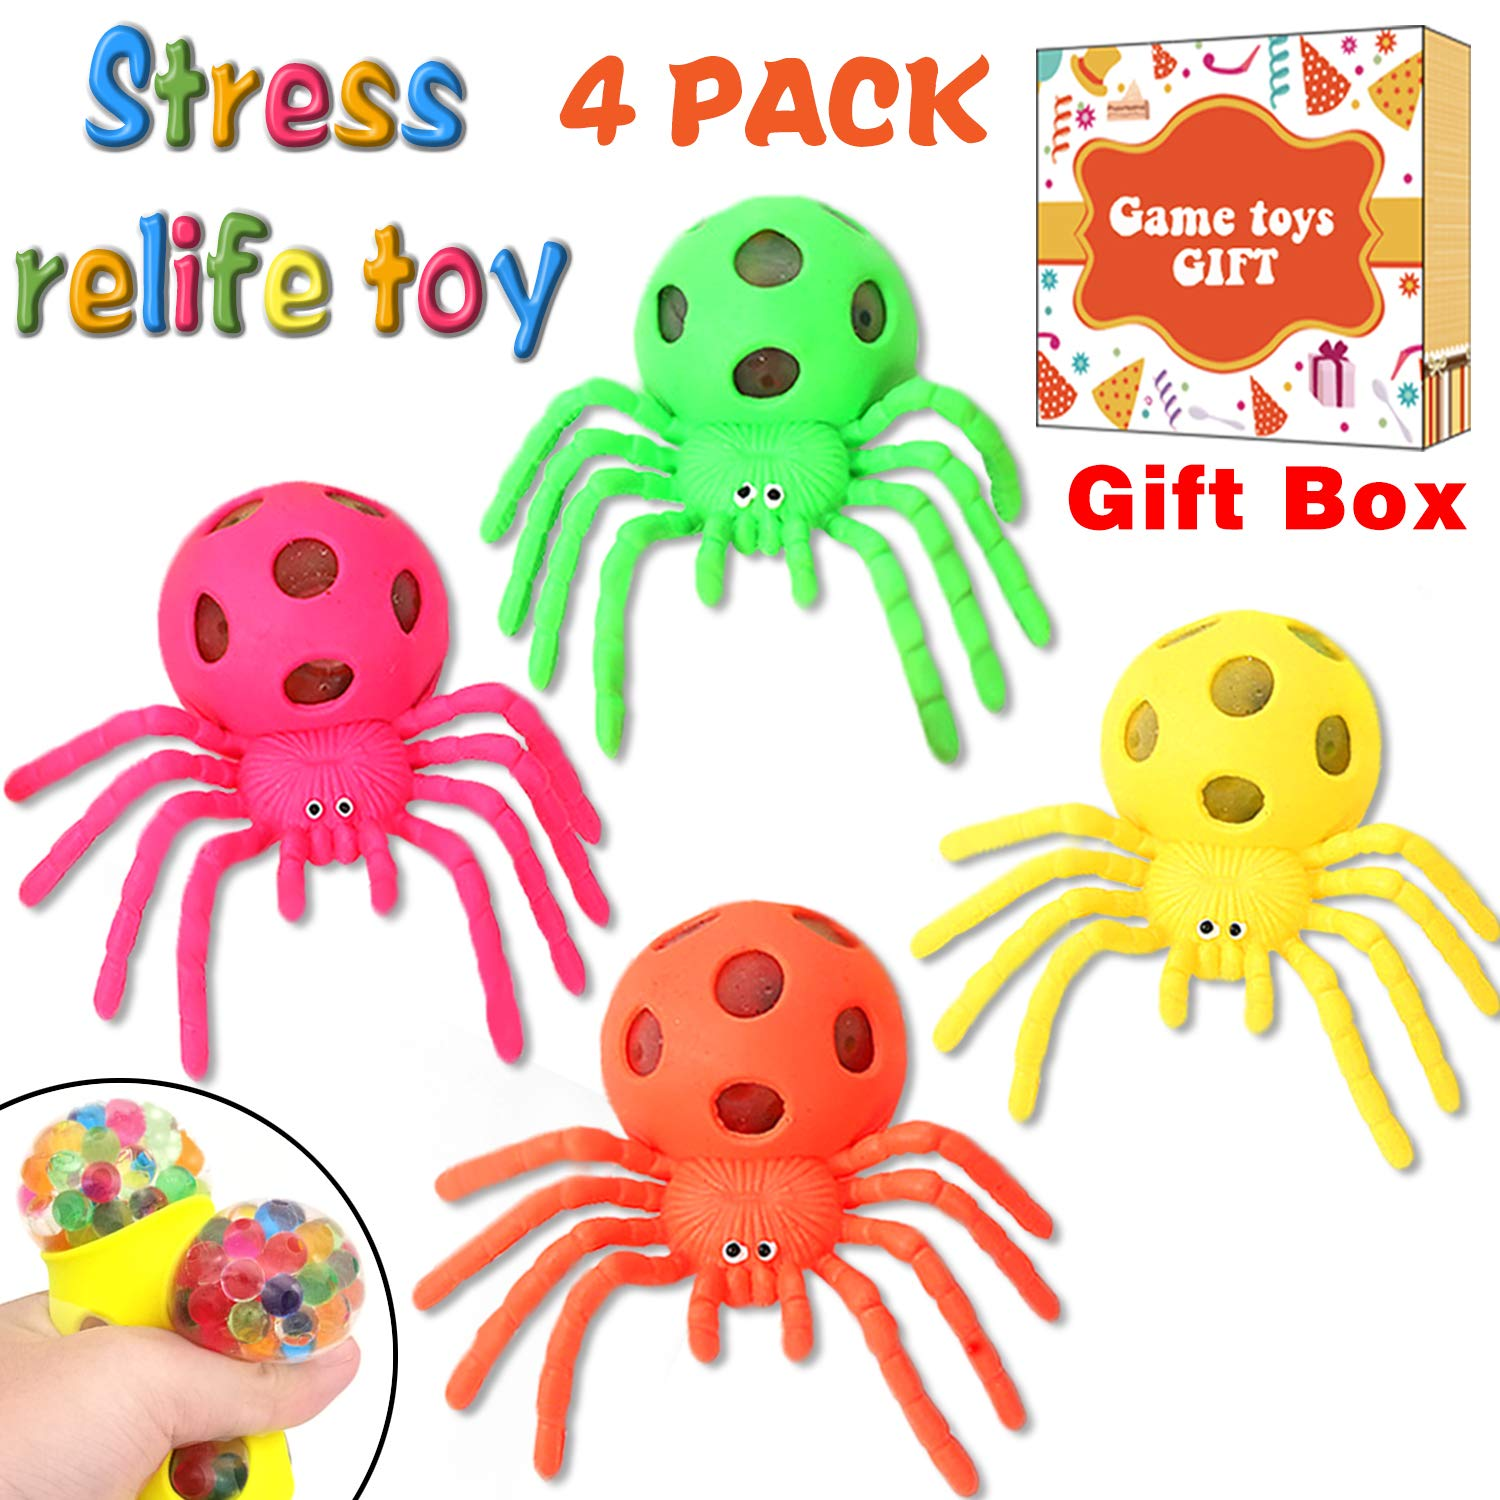 4 Pack Stress Relief Balls - Sensory Stress Balls for Kids Boys Girls Adults ADHD ADD Fidget Autistic Toys Anti-Stress Stress Relief Squeeze Anxiety Hand Therapy Balls Outdoor lndoor Office School